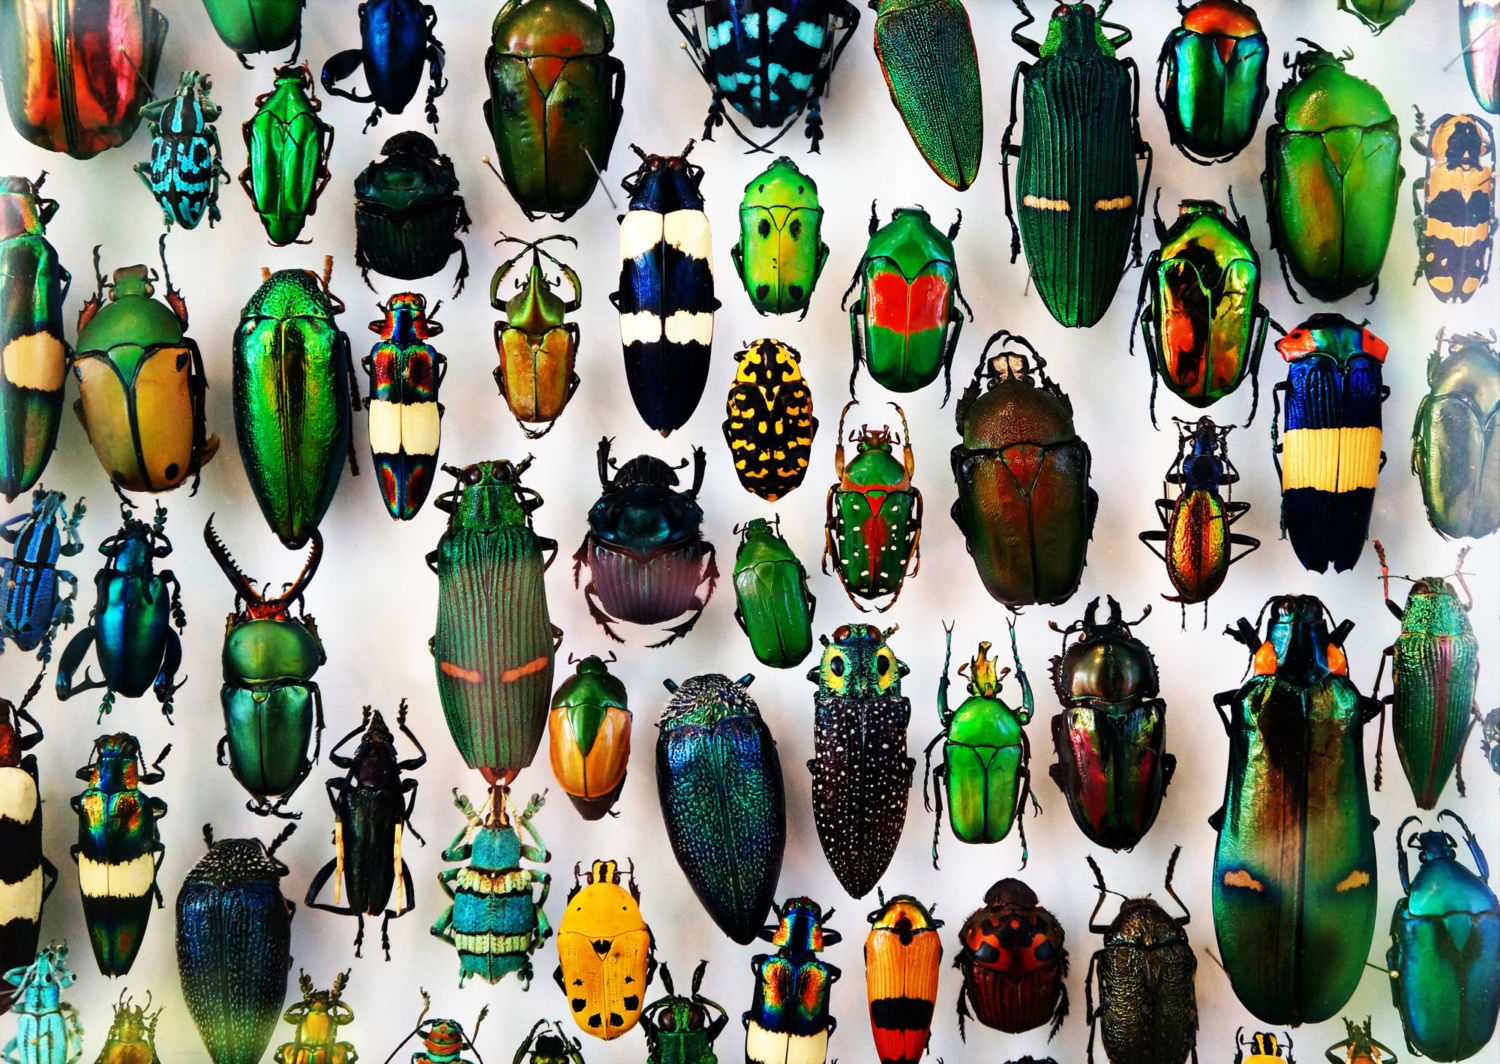 In Defense of Biodiversity: Why Protecting Species from